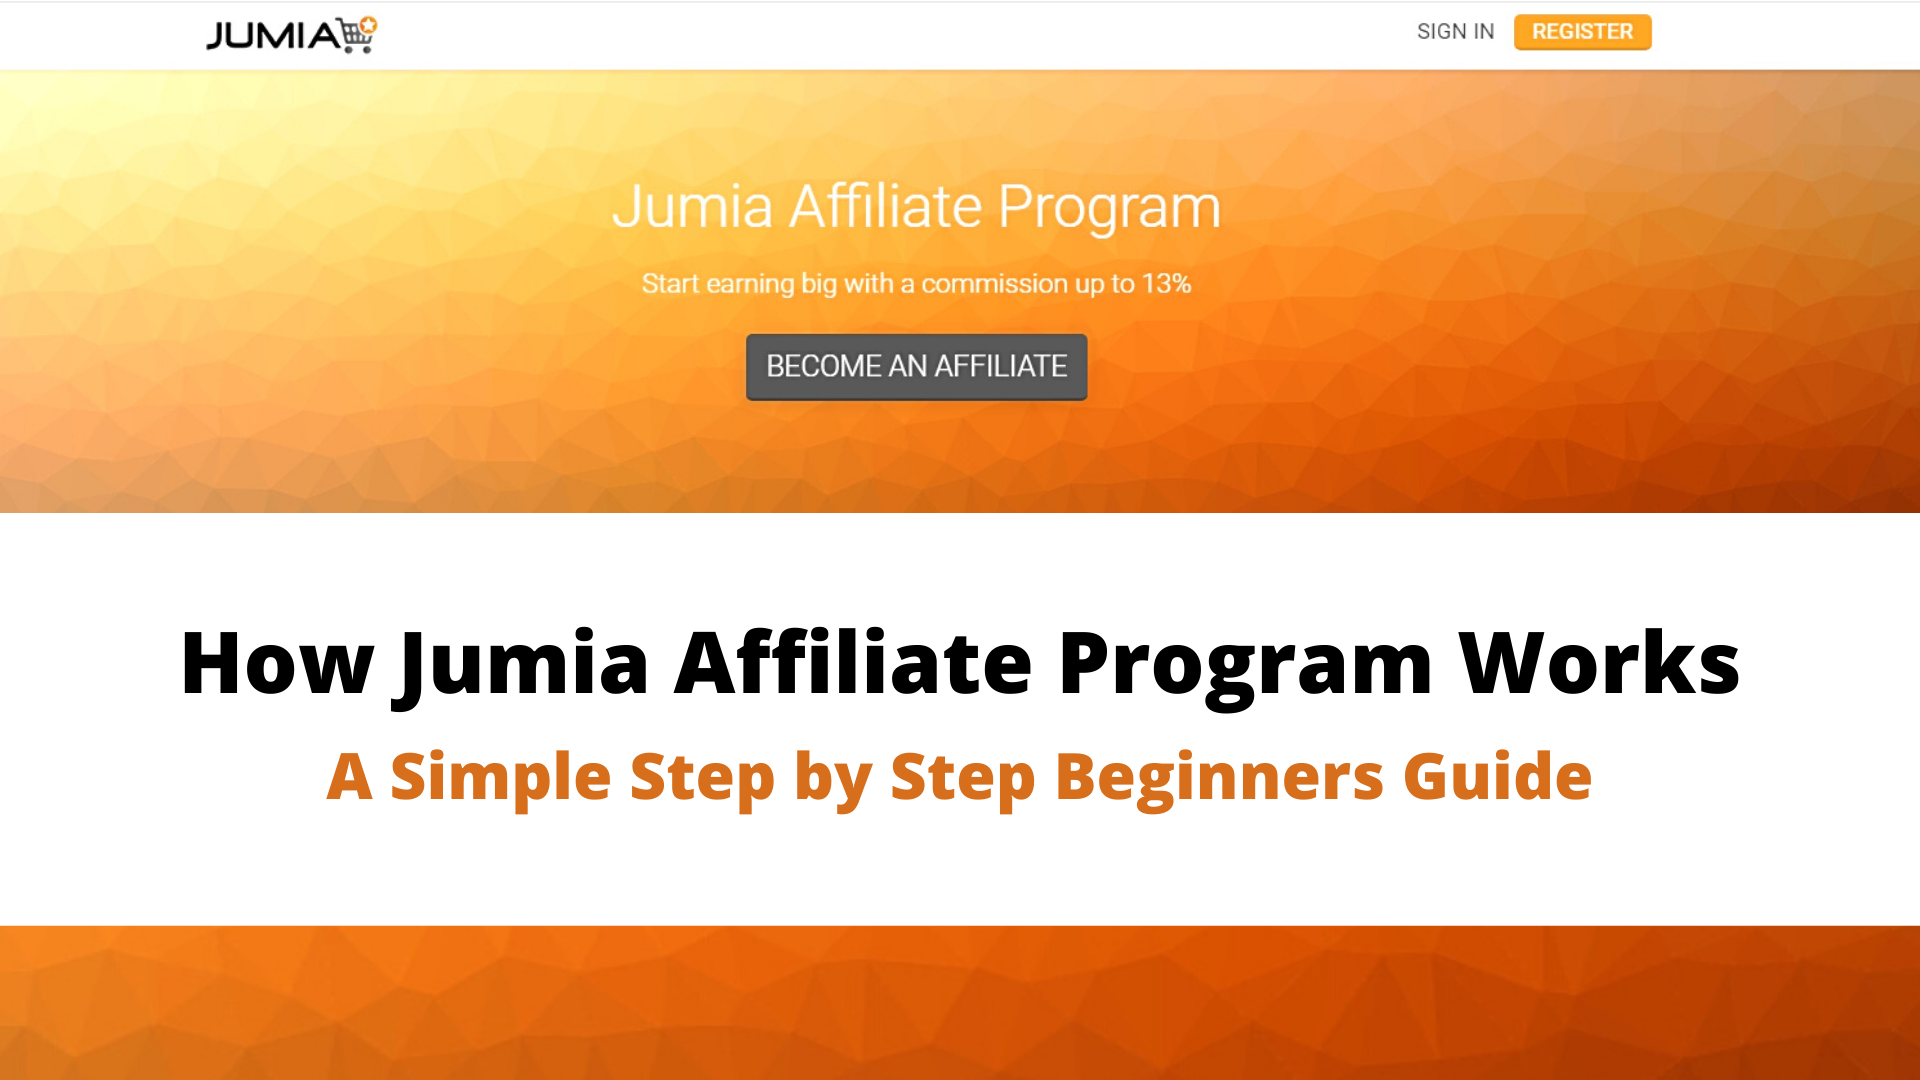 How Jumia Affiliate Program Works